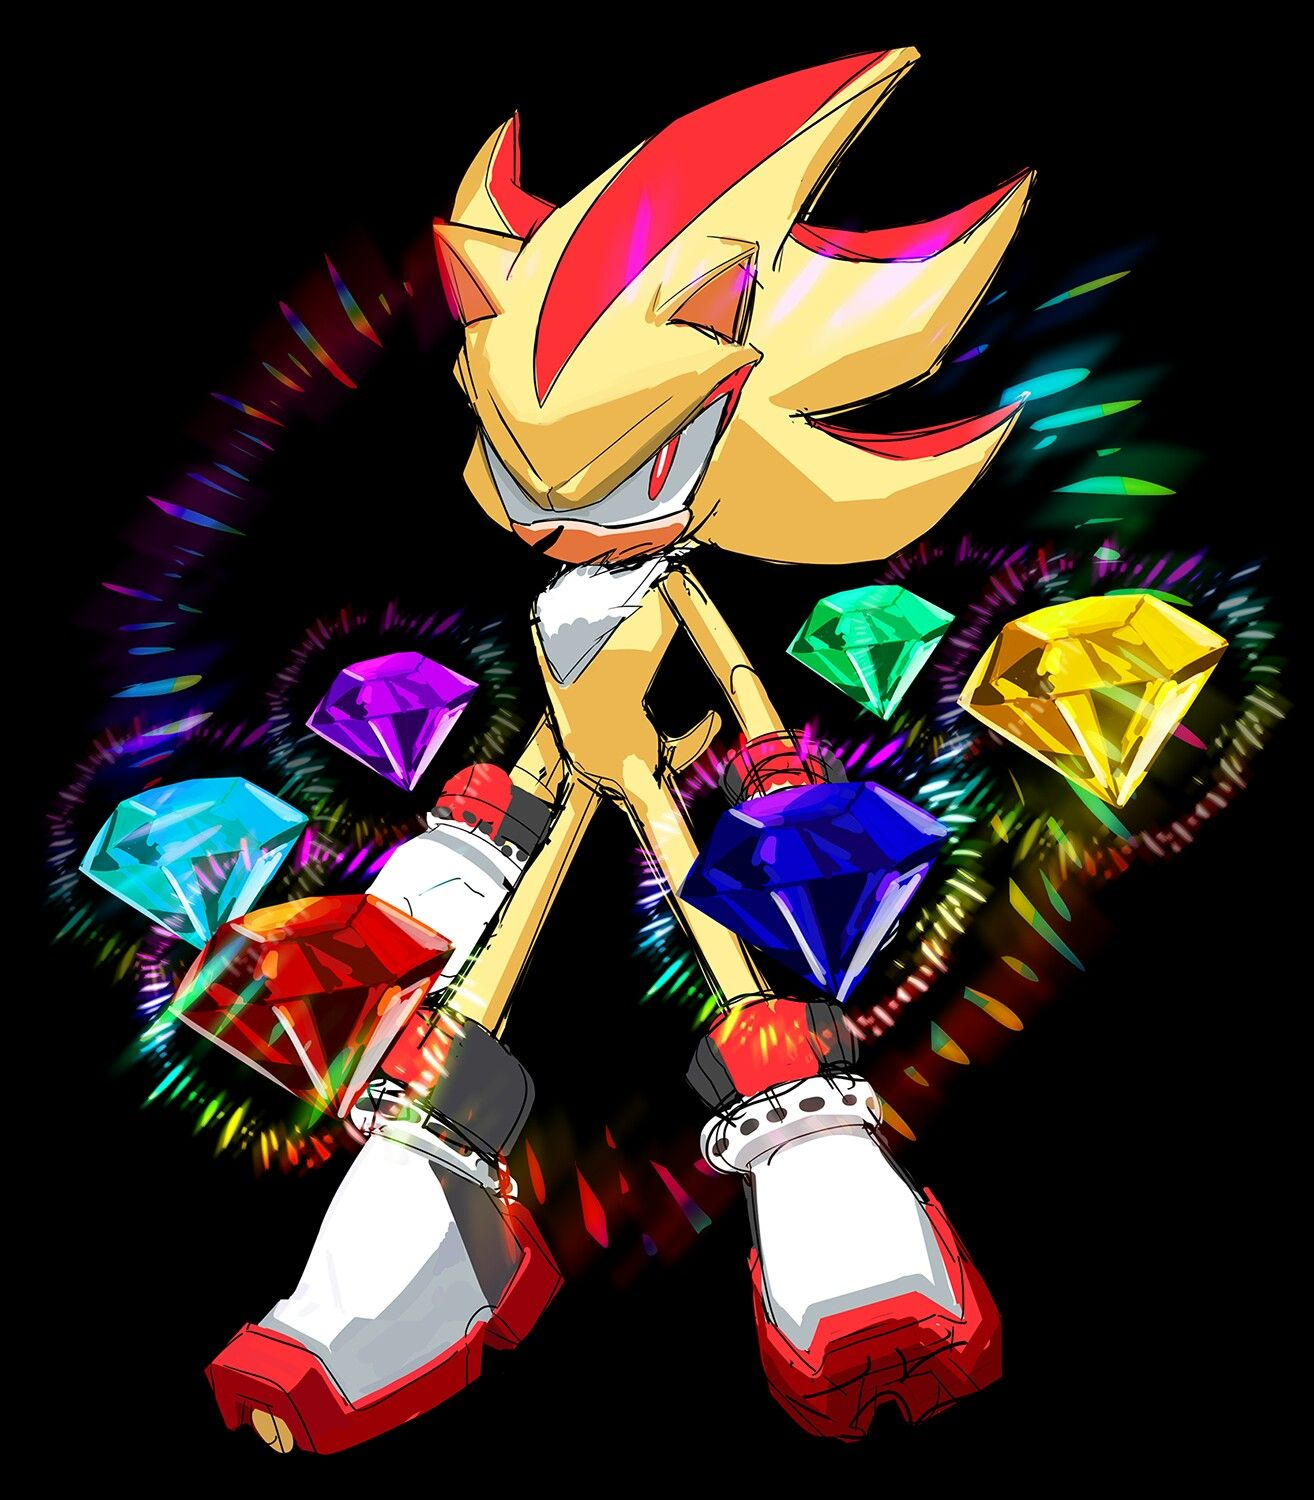 SOL on | Super shadow, Sonic and shadow, Shadow the hedgehog